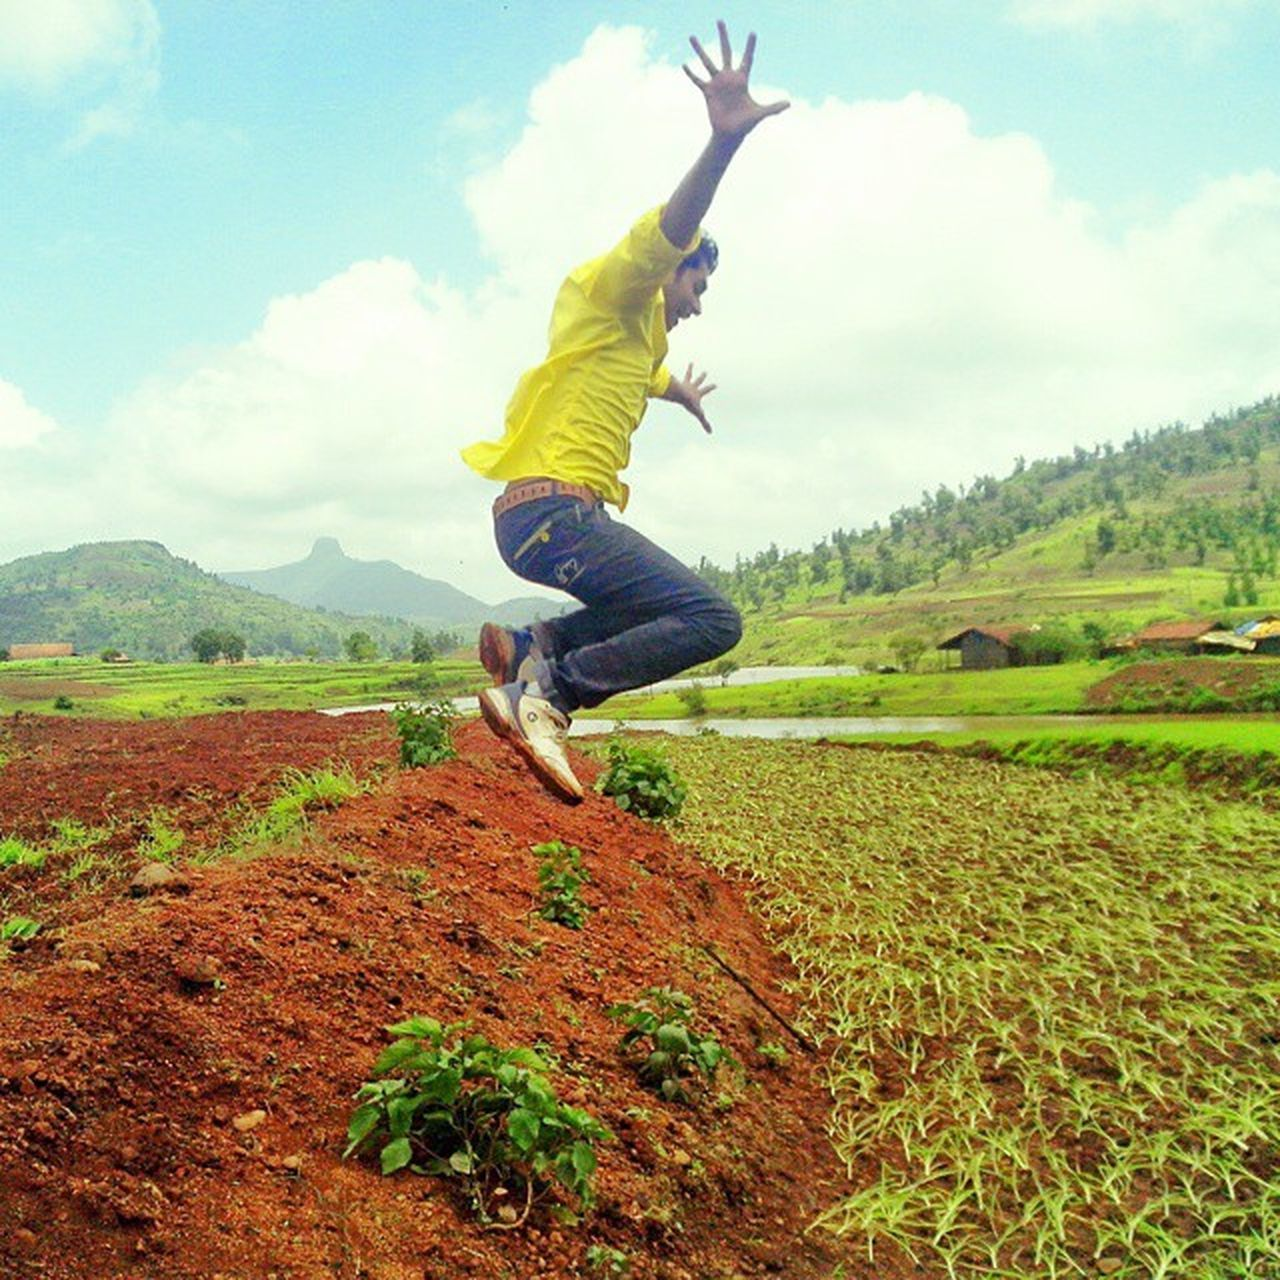 sky, full length, mid-air, field, cloud - sky, motion, casual clothing, one person, day, fun, jumping, outdoors, landscape, nature, grass, tree, beauty in nature, energetic, young adult, adult, people